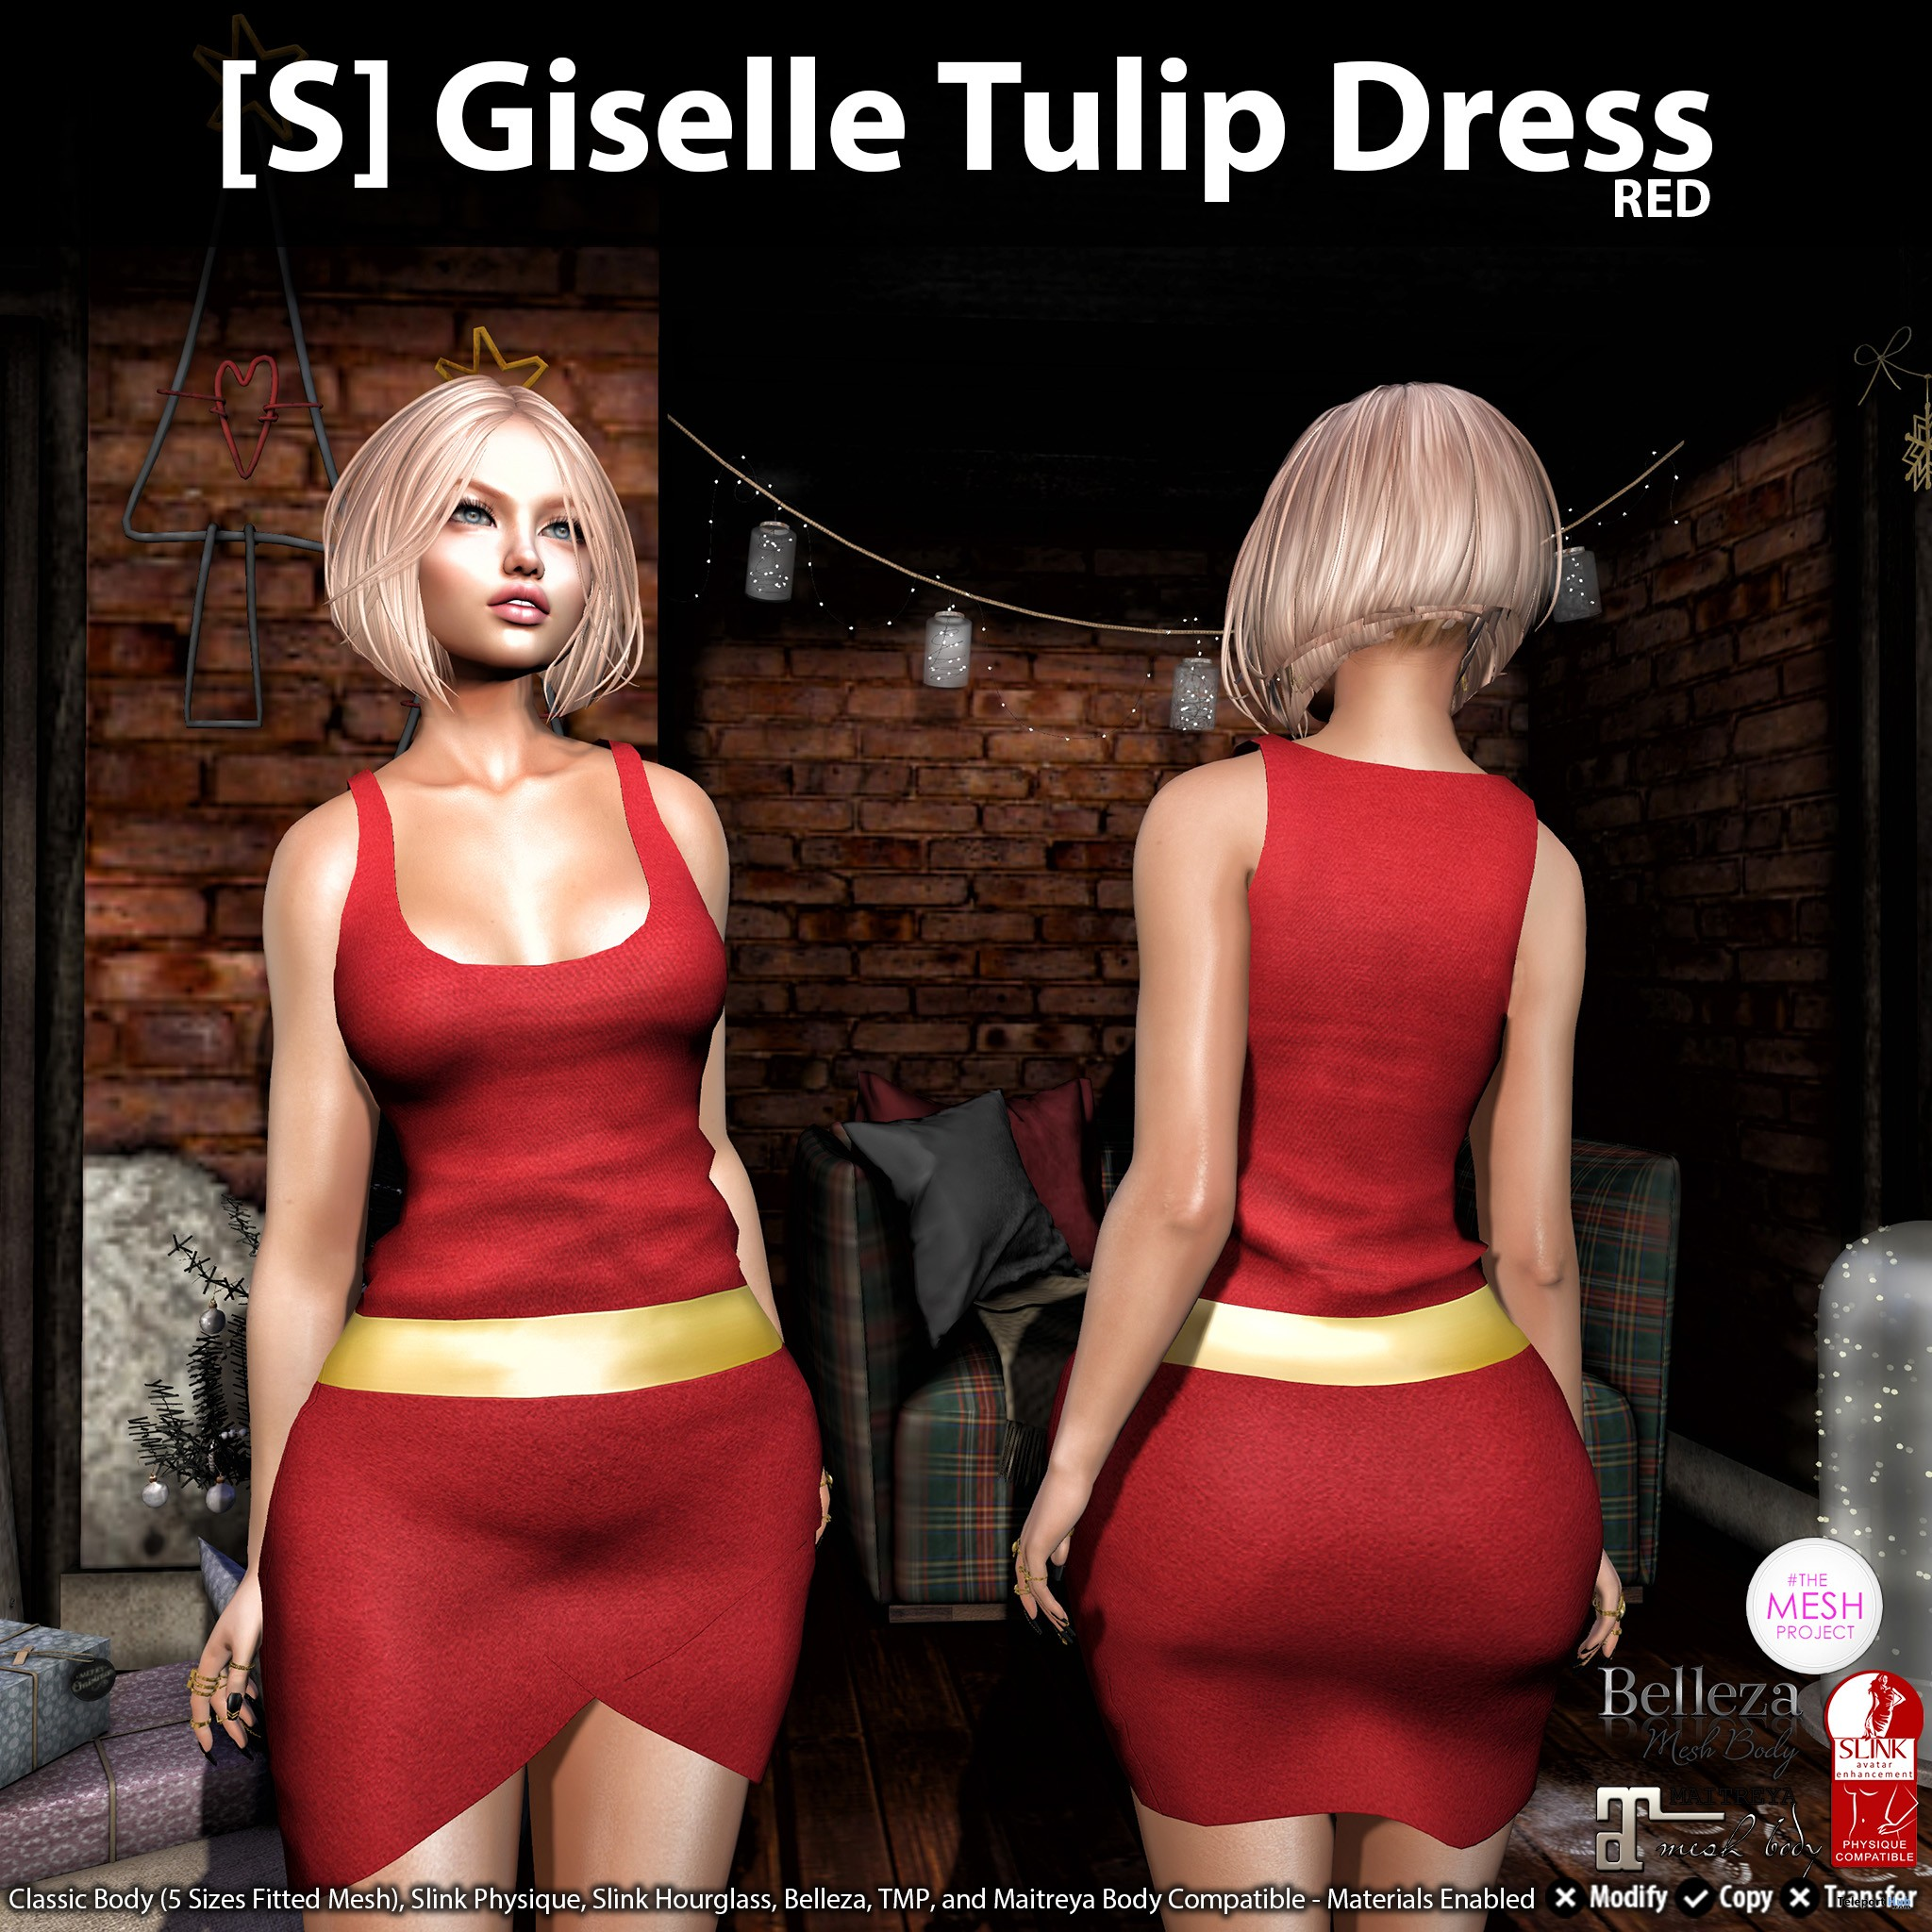 New Release: [S] Giselle Tulip Dress by [satus Inc] - Teleport Hub - teleporthub.com